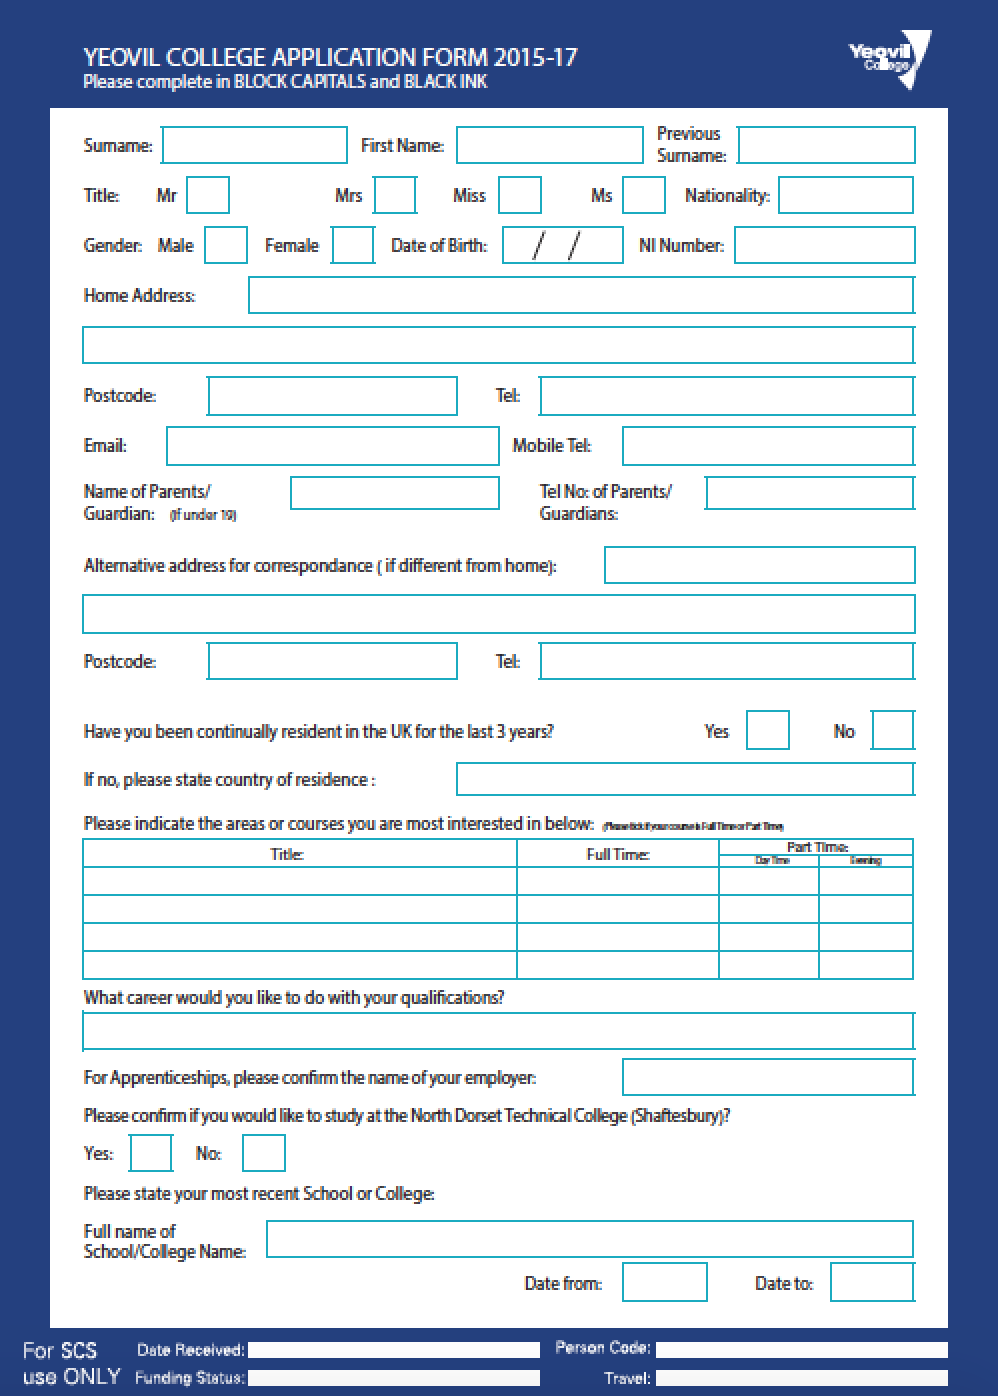 Yeovil College  Application Form  Application Form  Document